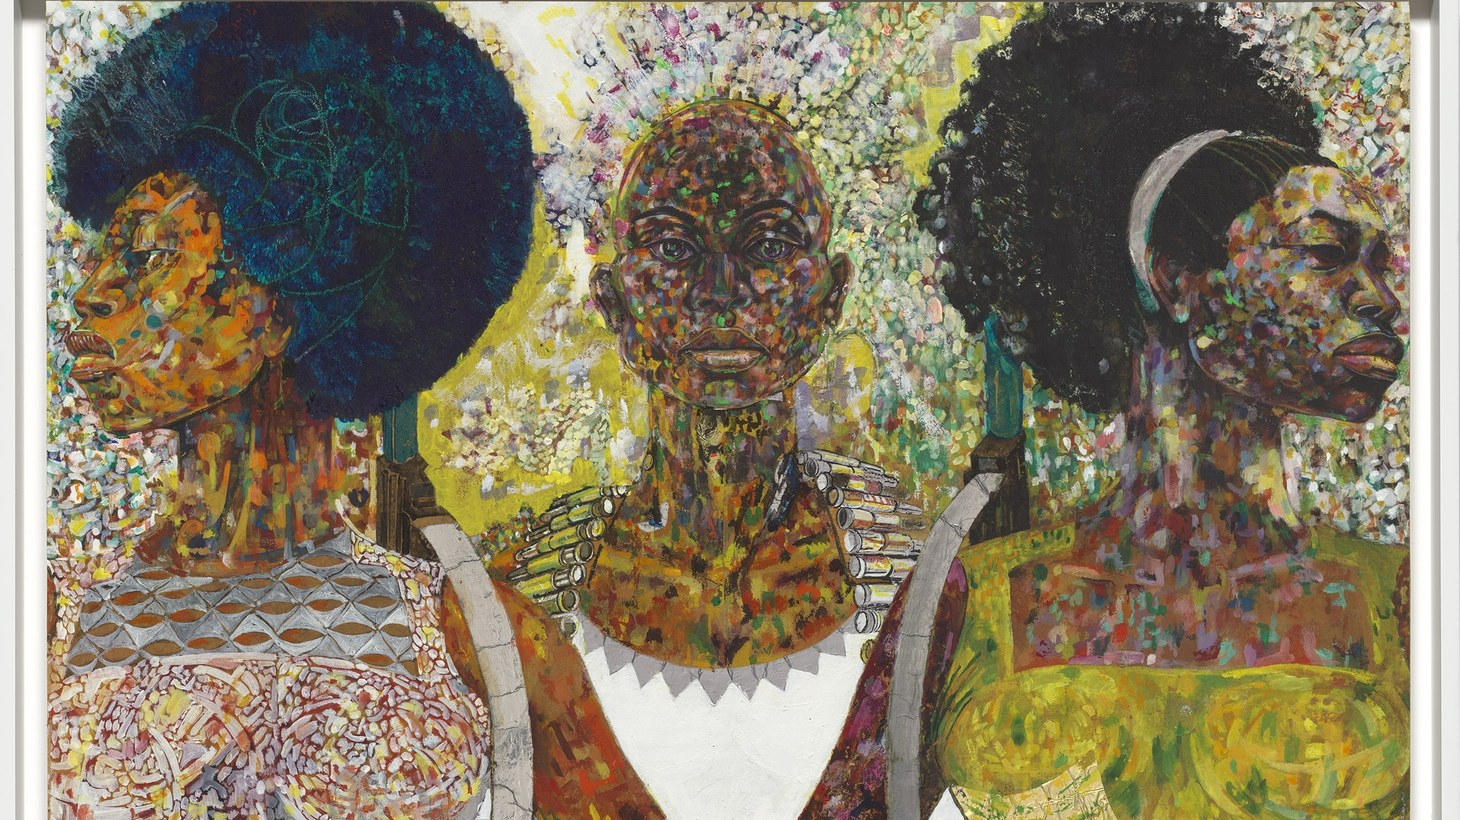 Jeff Donaldson, Wives of Sango, 1971. Paint, foil and ink on cardboard. 36 1/4 x 25 9/16 in. Collection of the Smithsonian National Museum of African American History and Culture.